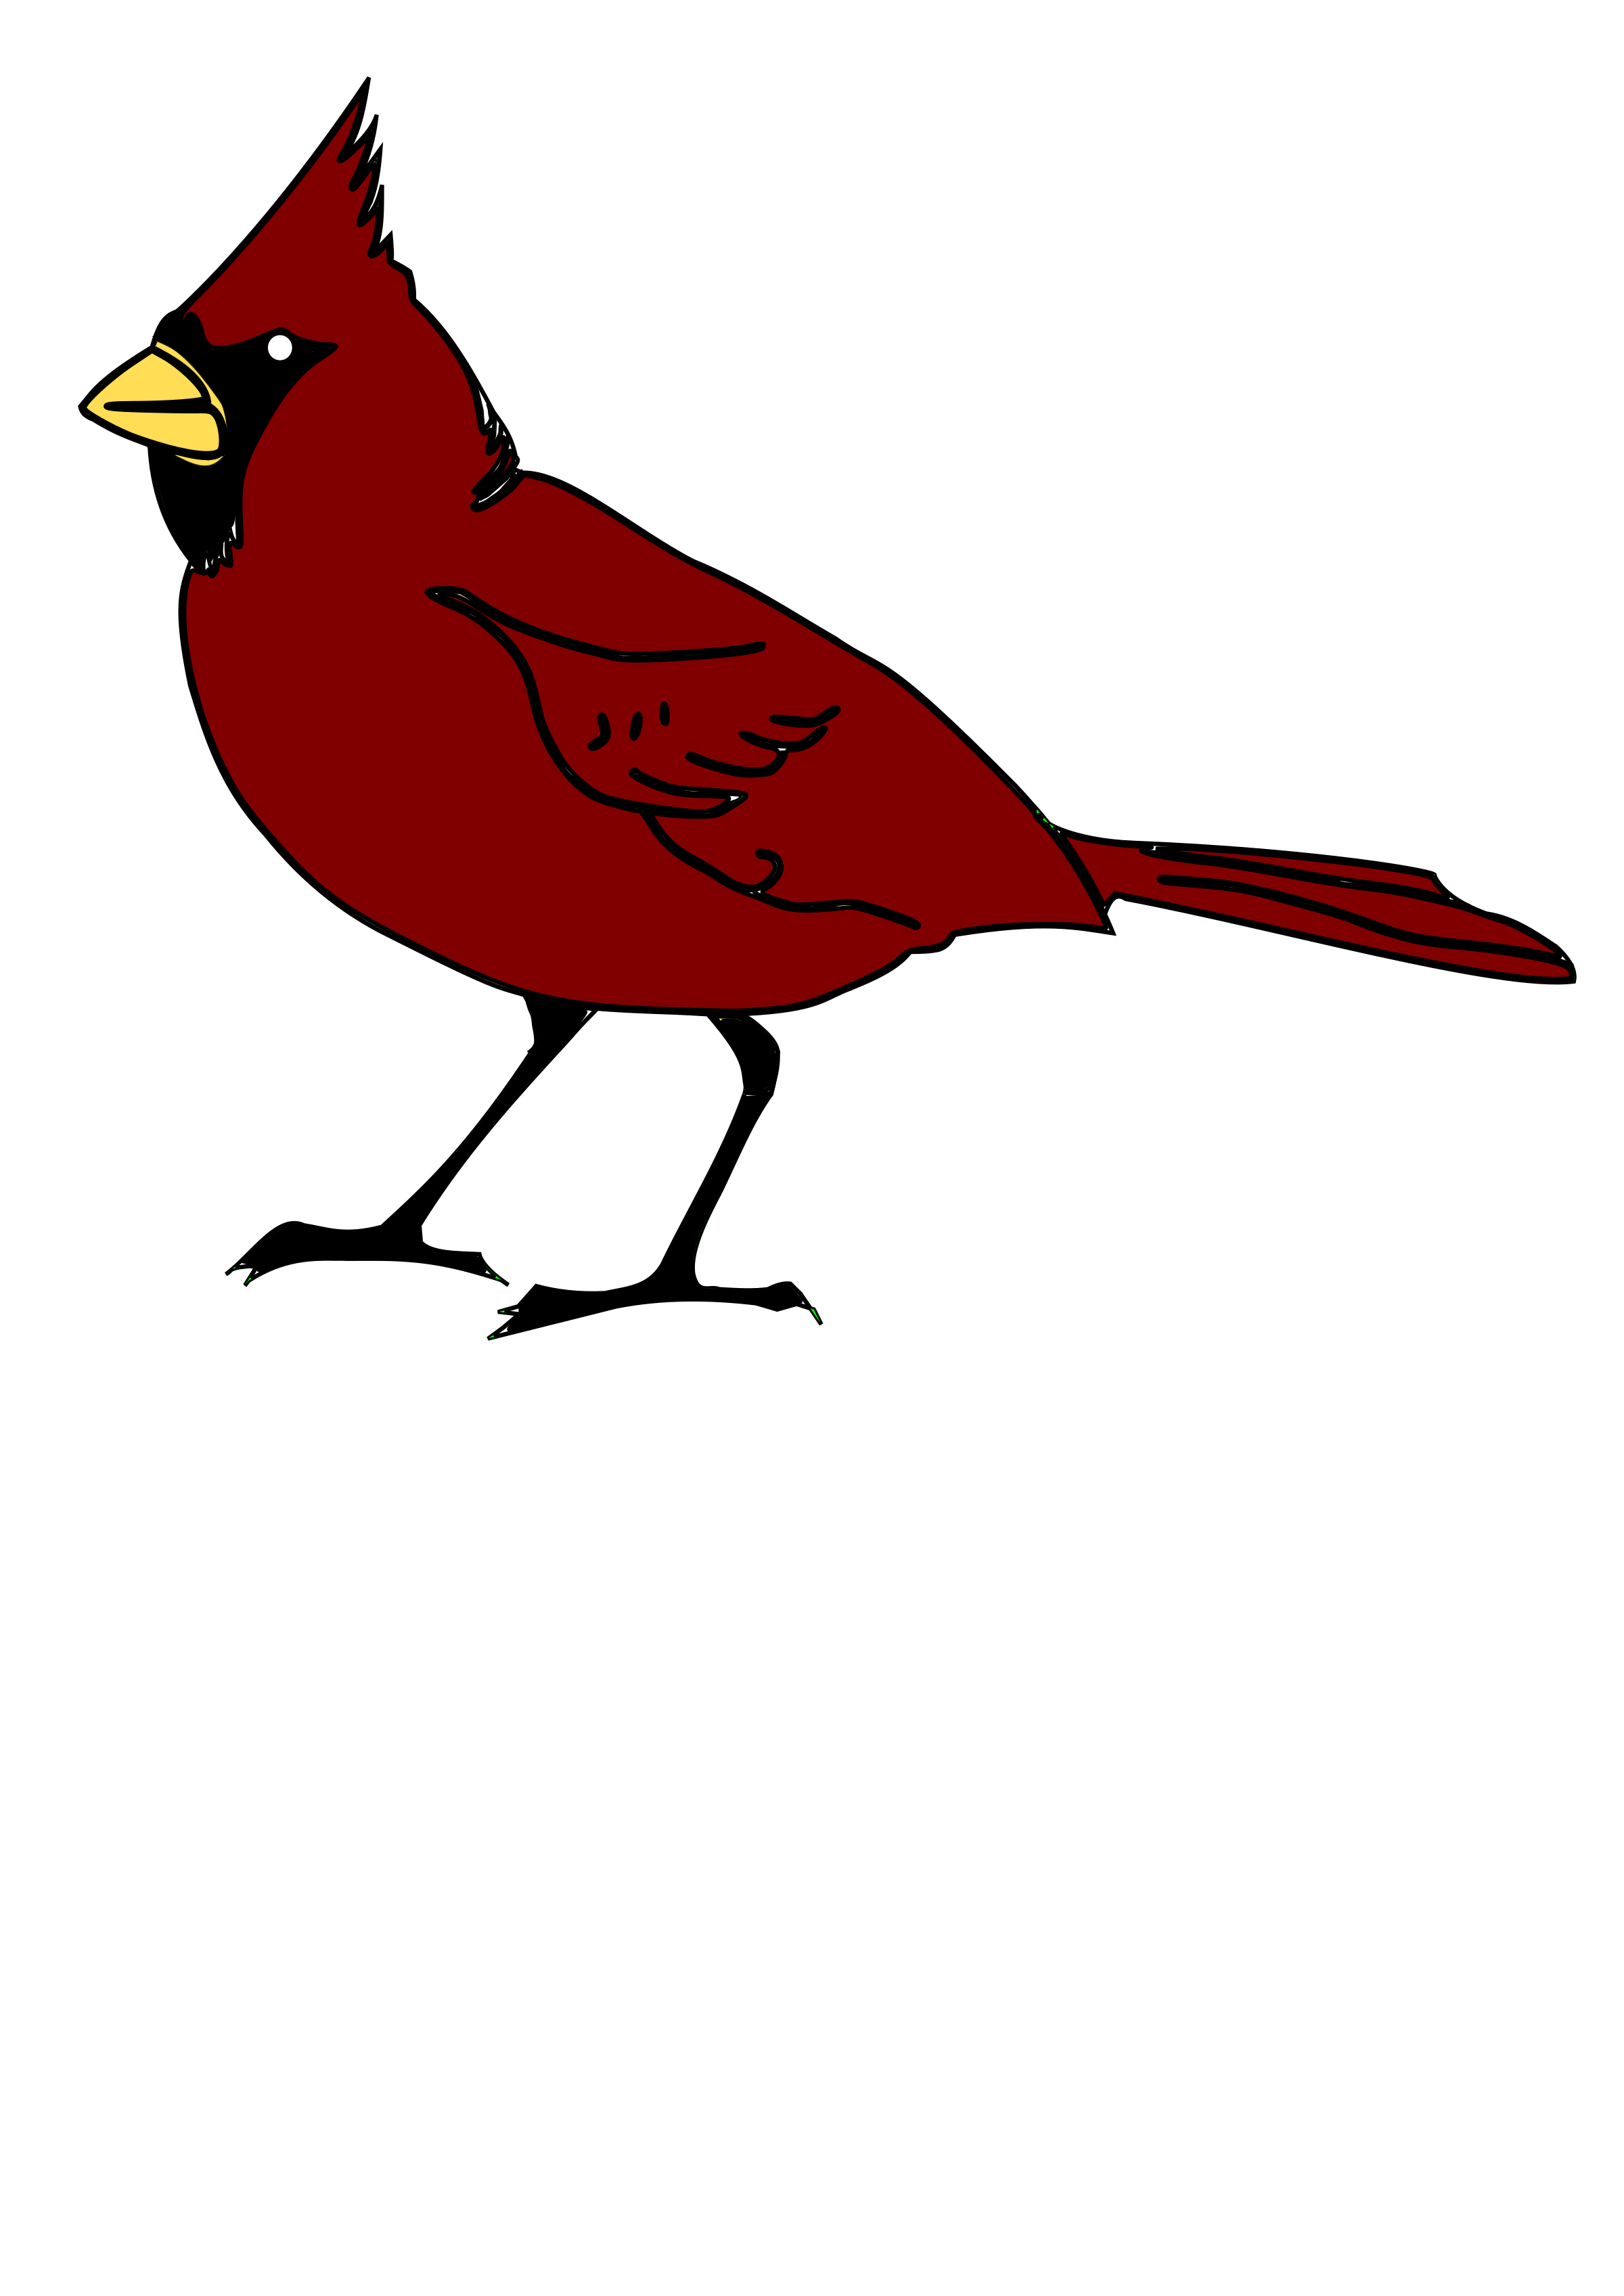 cardinal silhouette clip art at getdrawings com free for personal rh getdrawings com clipart cardinal bird clipart cardinal on branch